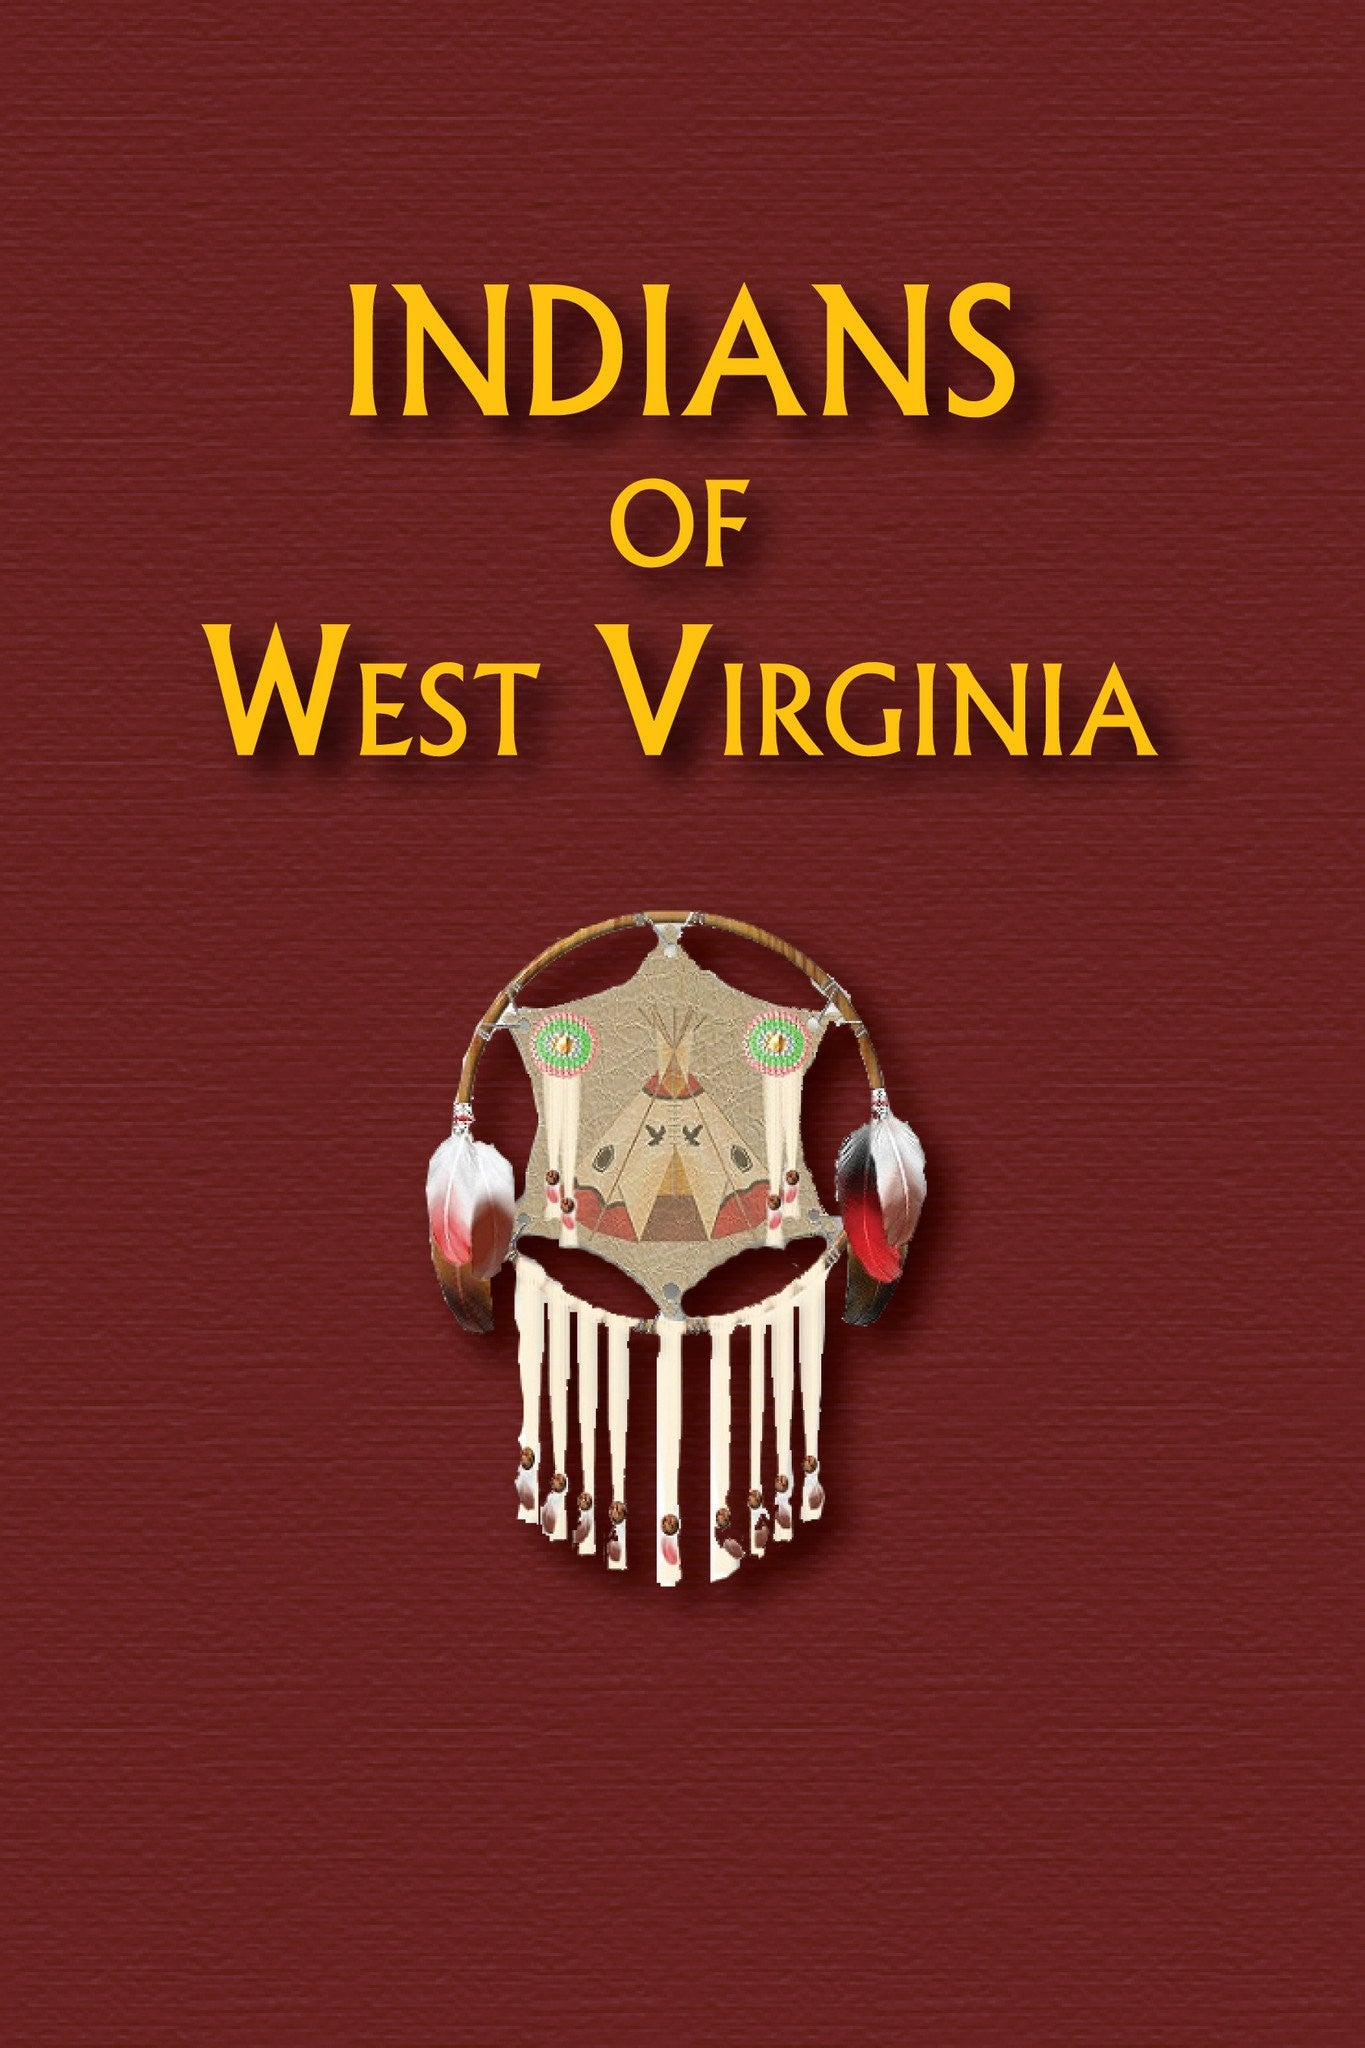 Indians of West Virginia